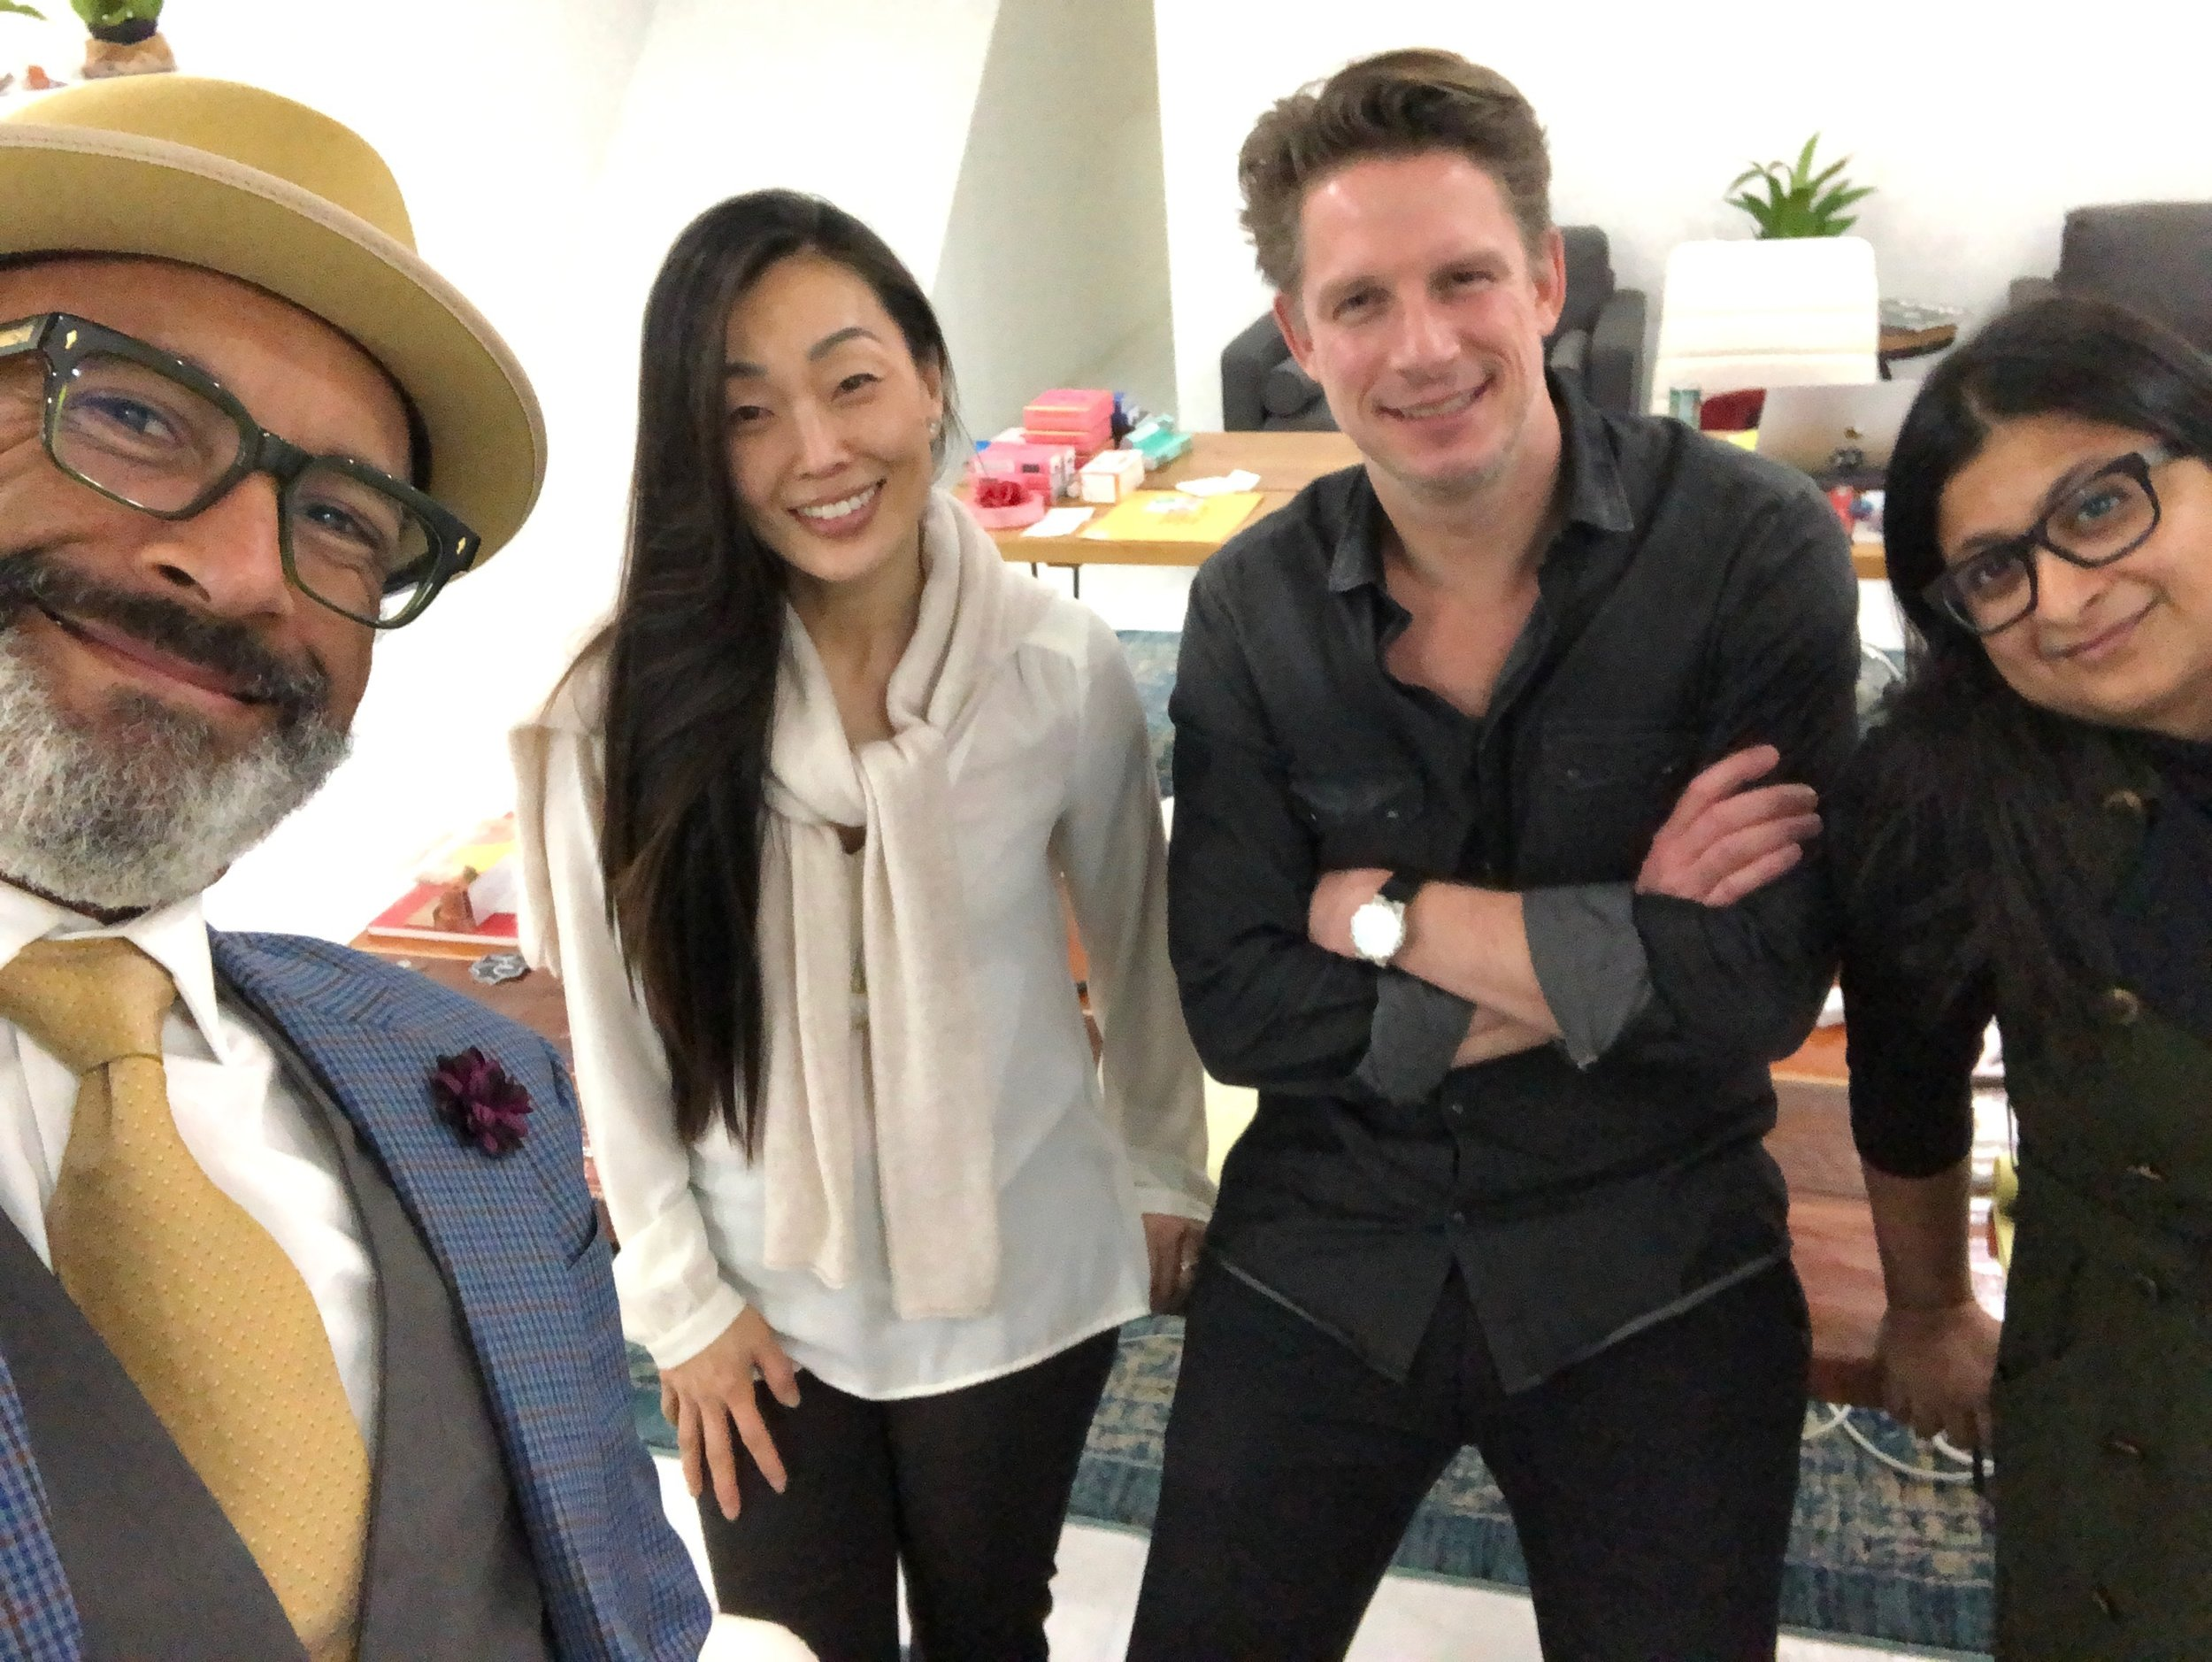 Hudson Cutler Executive Team (L-R: Shawn Amos, Irene Hong, Robert Dowling, Lavanya DJ)